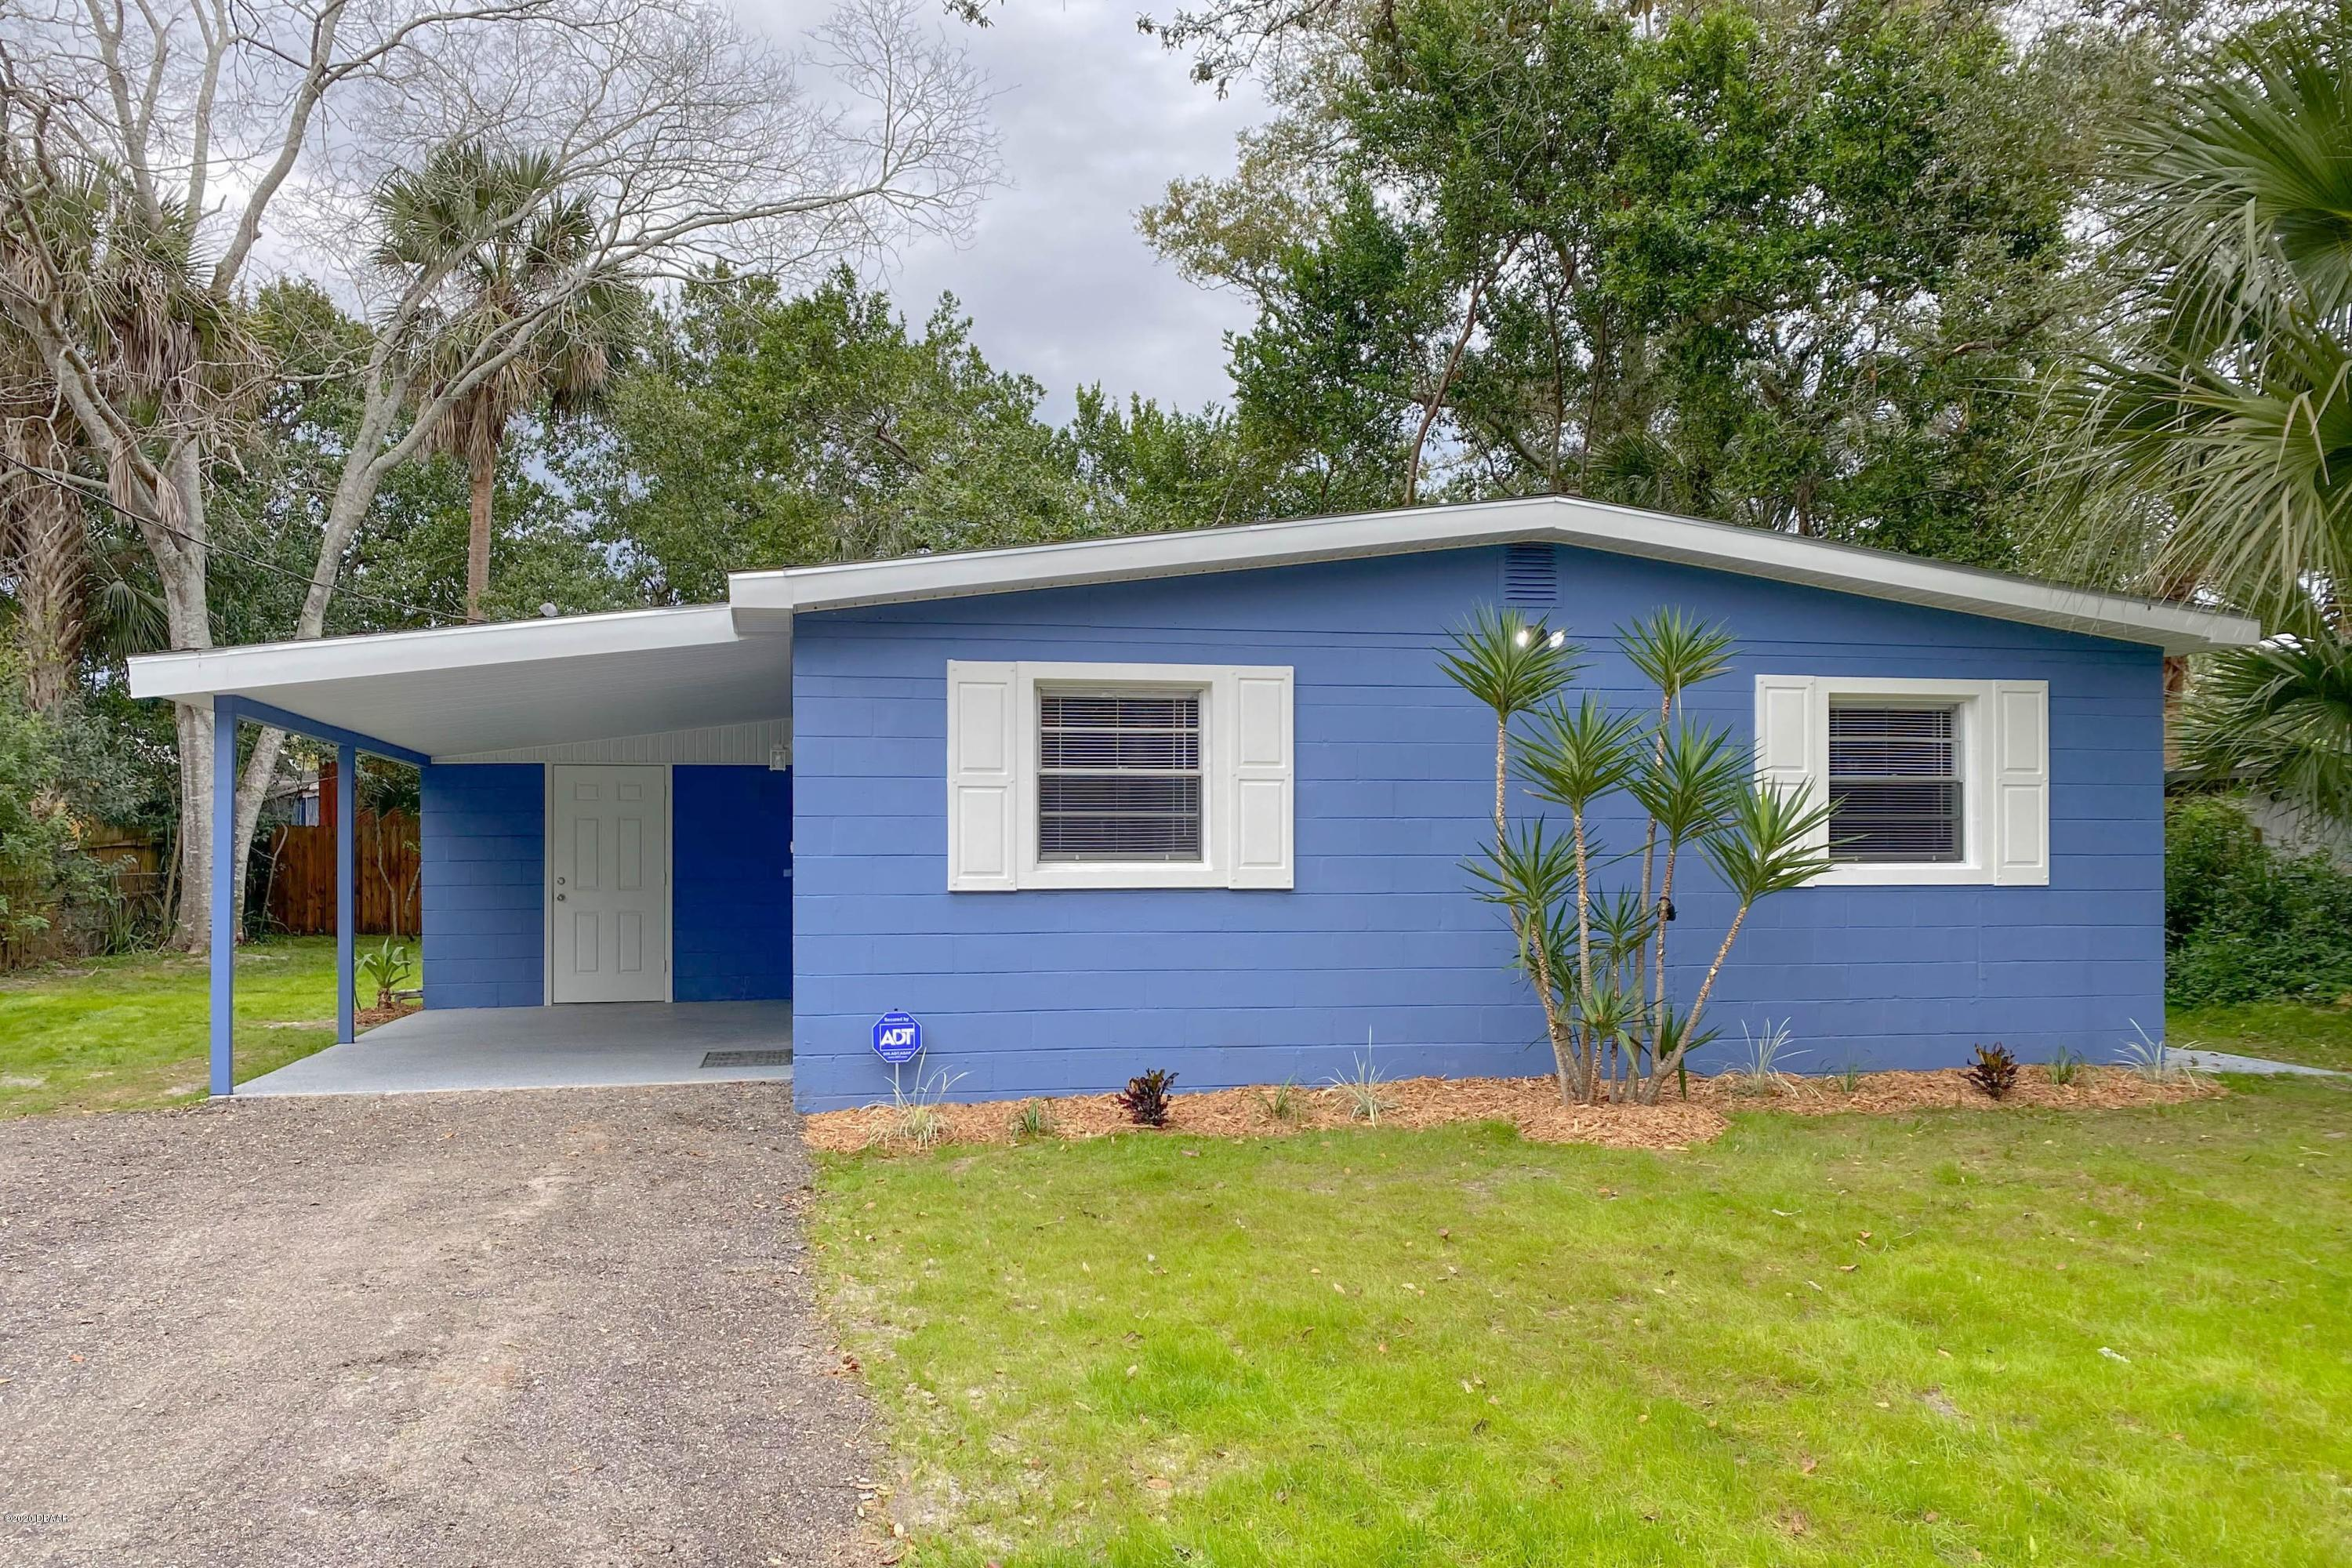 1224 David Dr 32117 - One of Holly Hill Homes for Sale